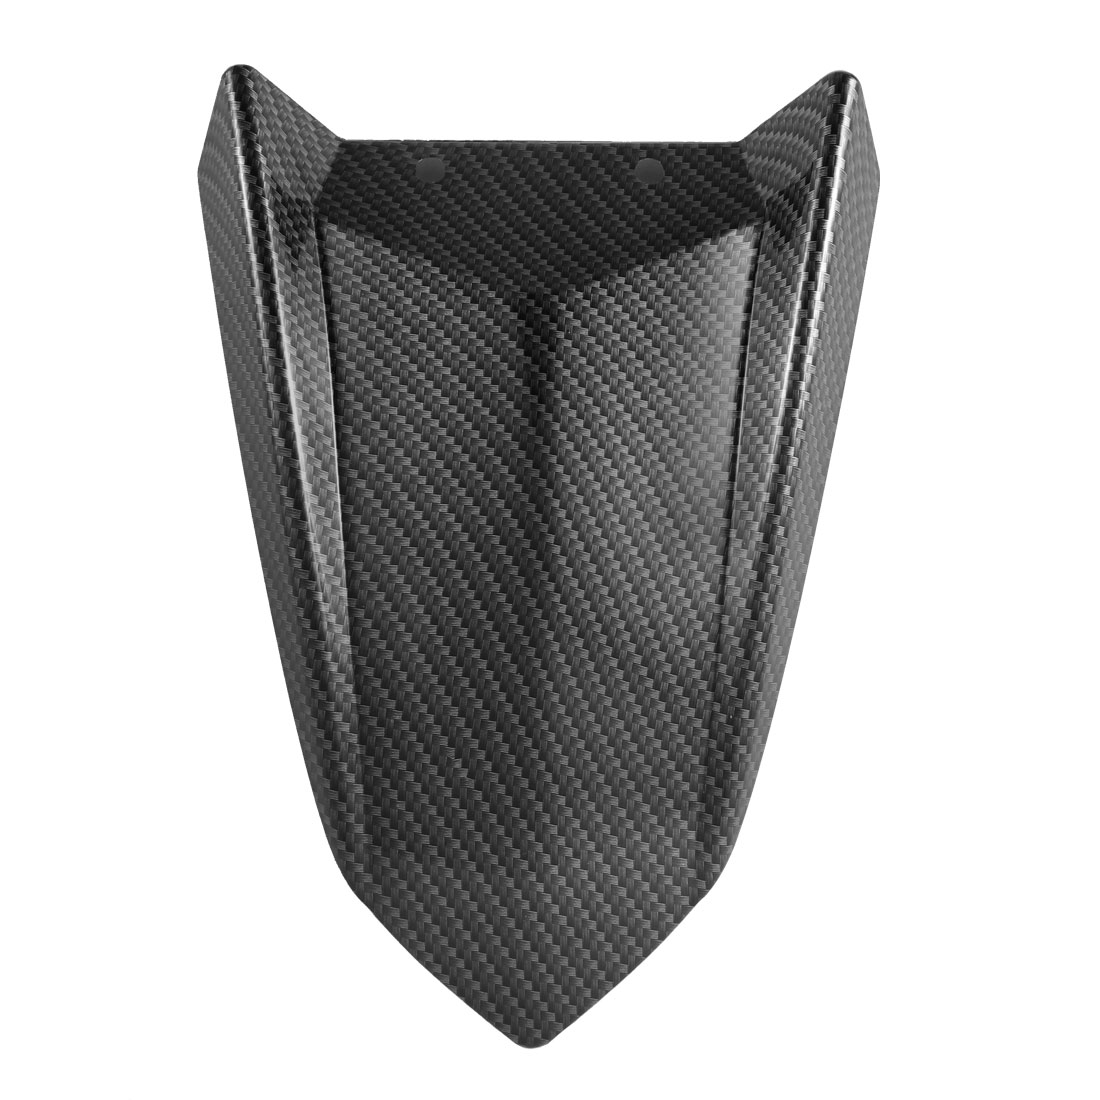 Motorcycle ABS Plastic Carbon Fiber Pattern Front Mud Splash Flap Guard for BWS